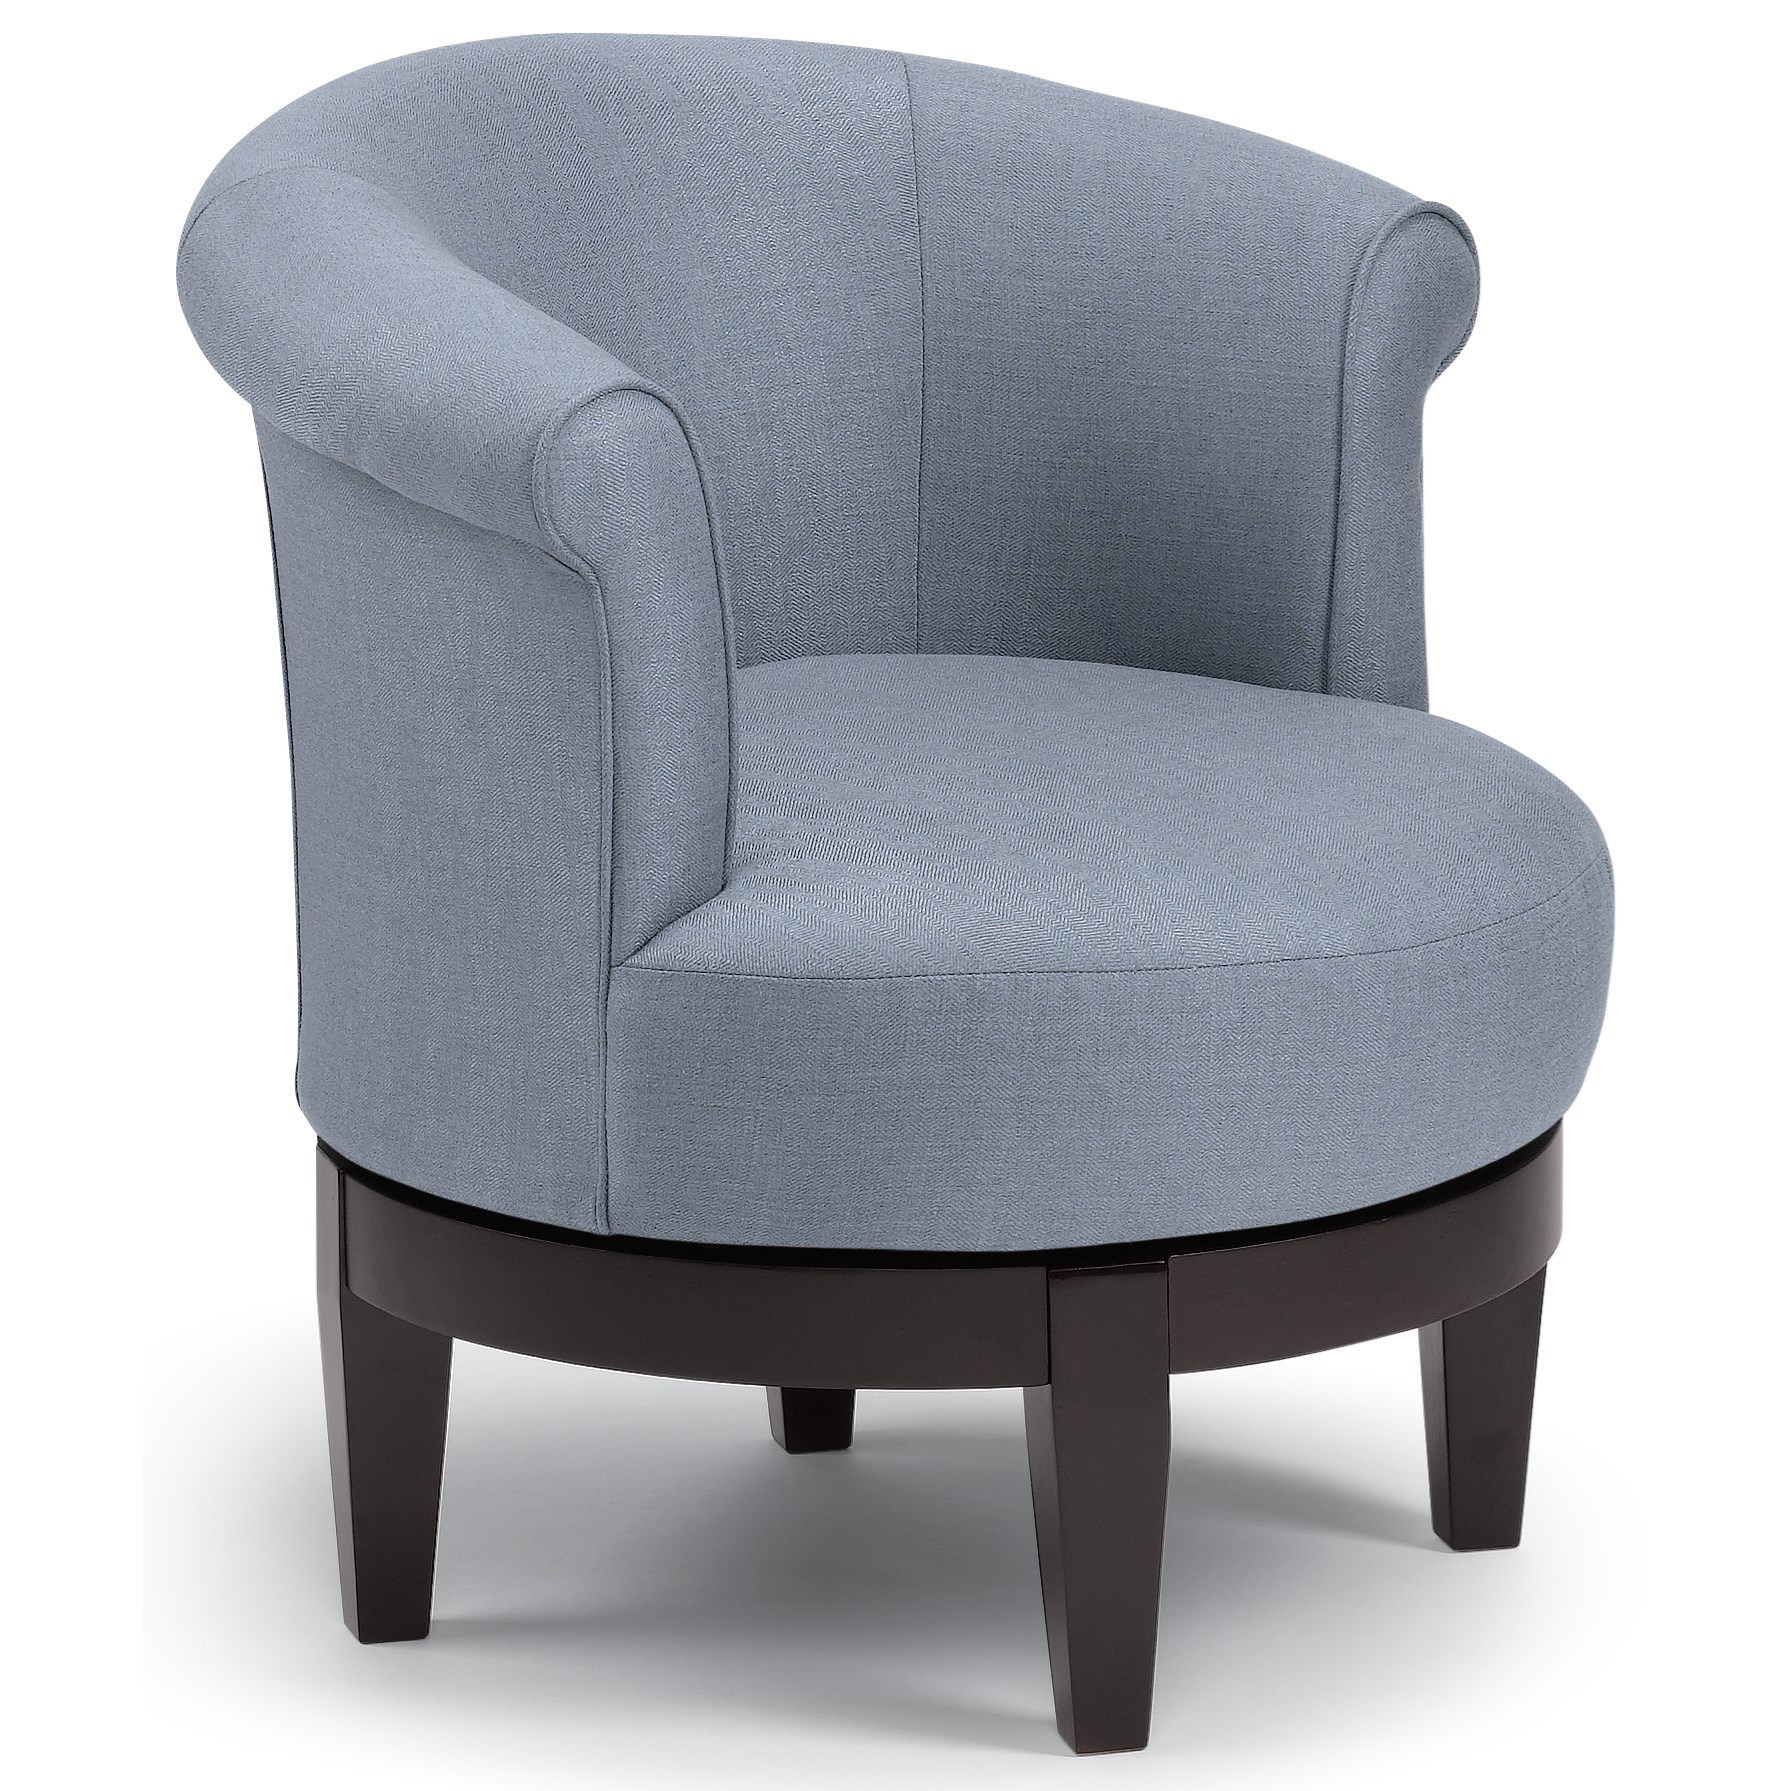 barrel swivel chairs upholstered ultra comfort lift chair best home furnishings chic attica with traditional rolled back